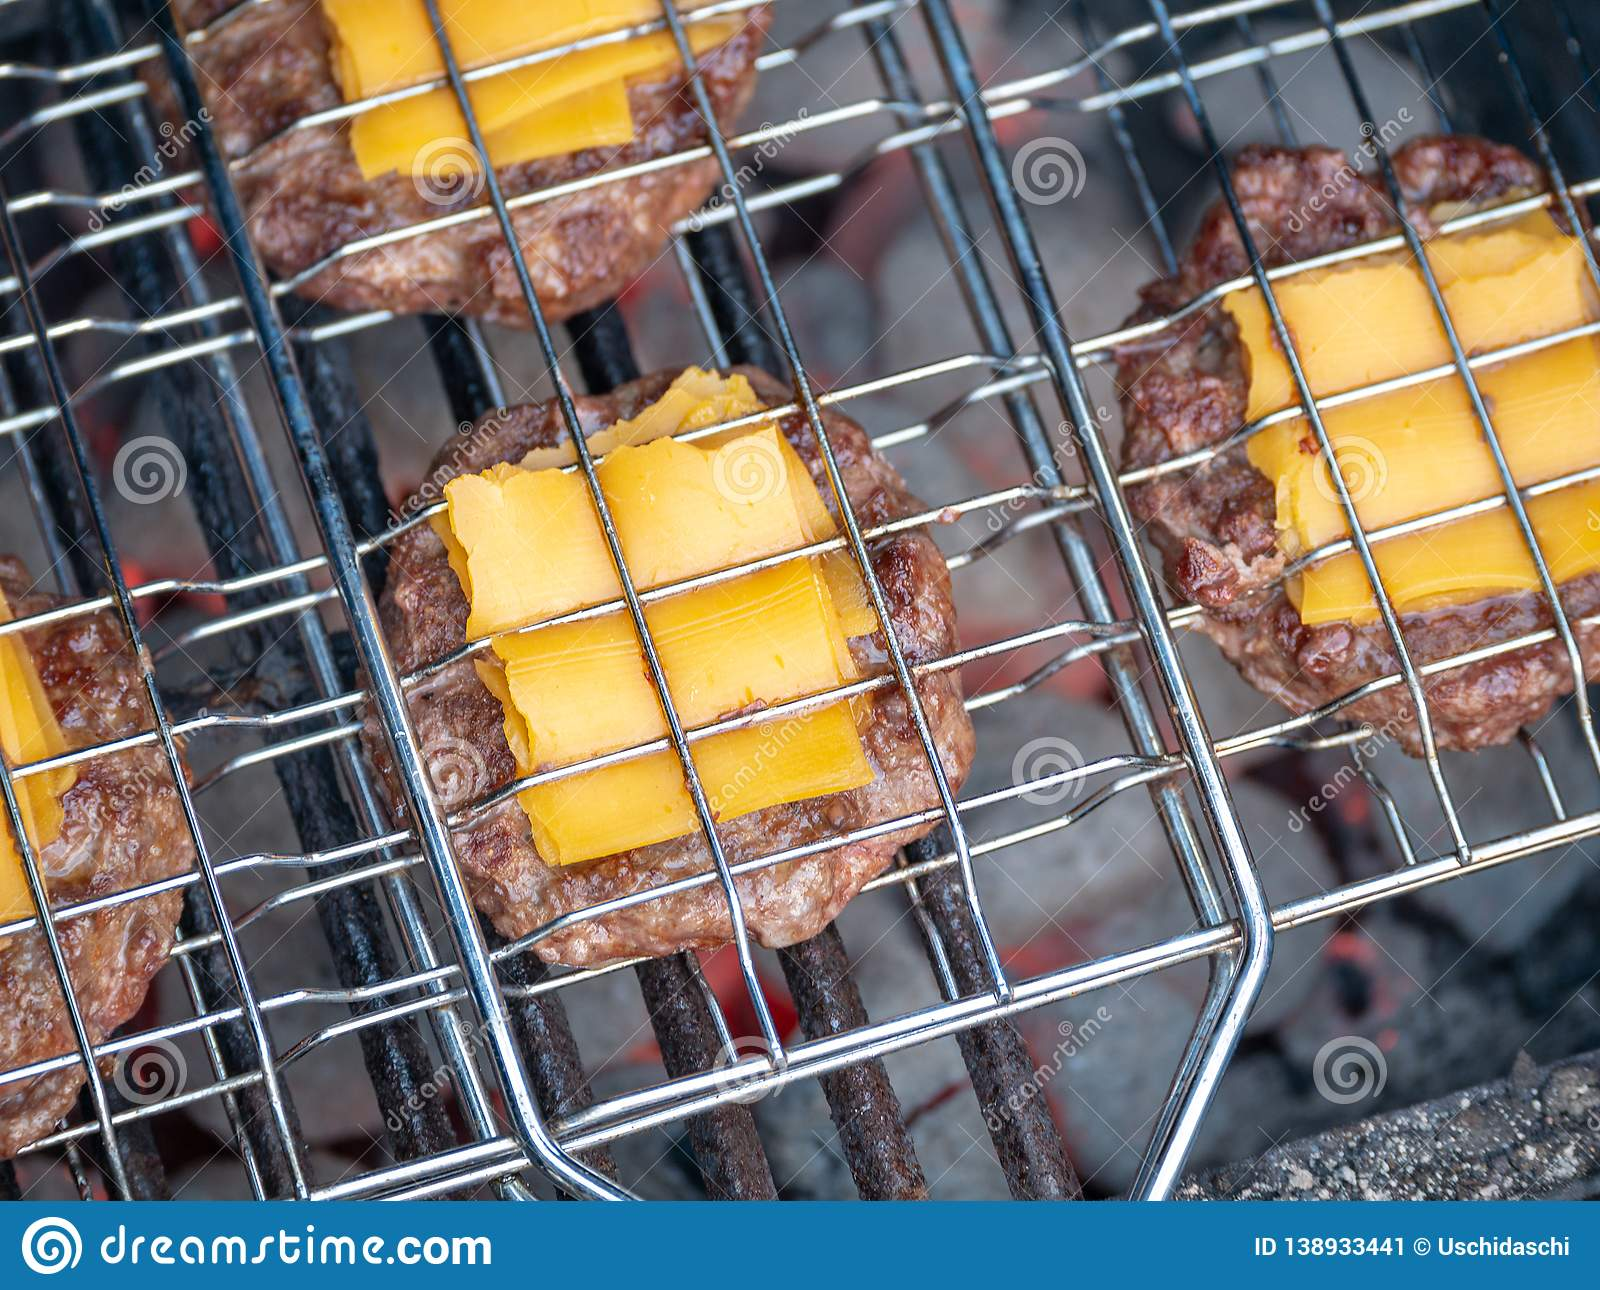 Image of bbq burger patties with cheese on grill